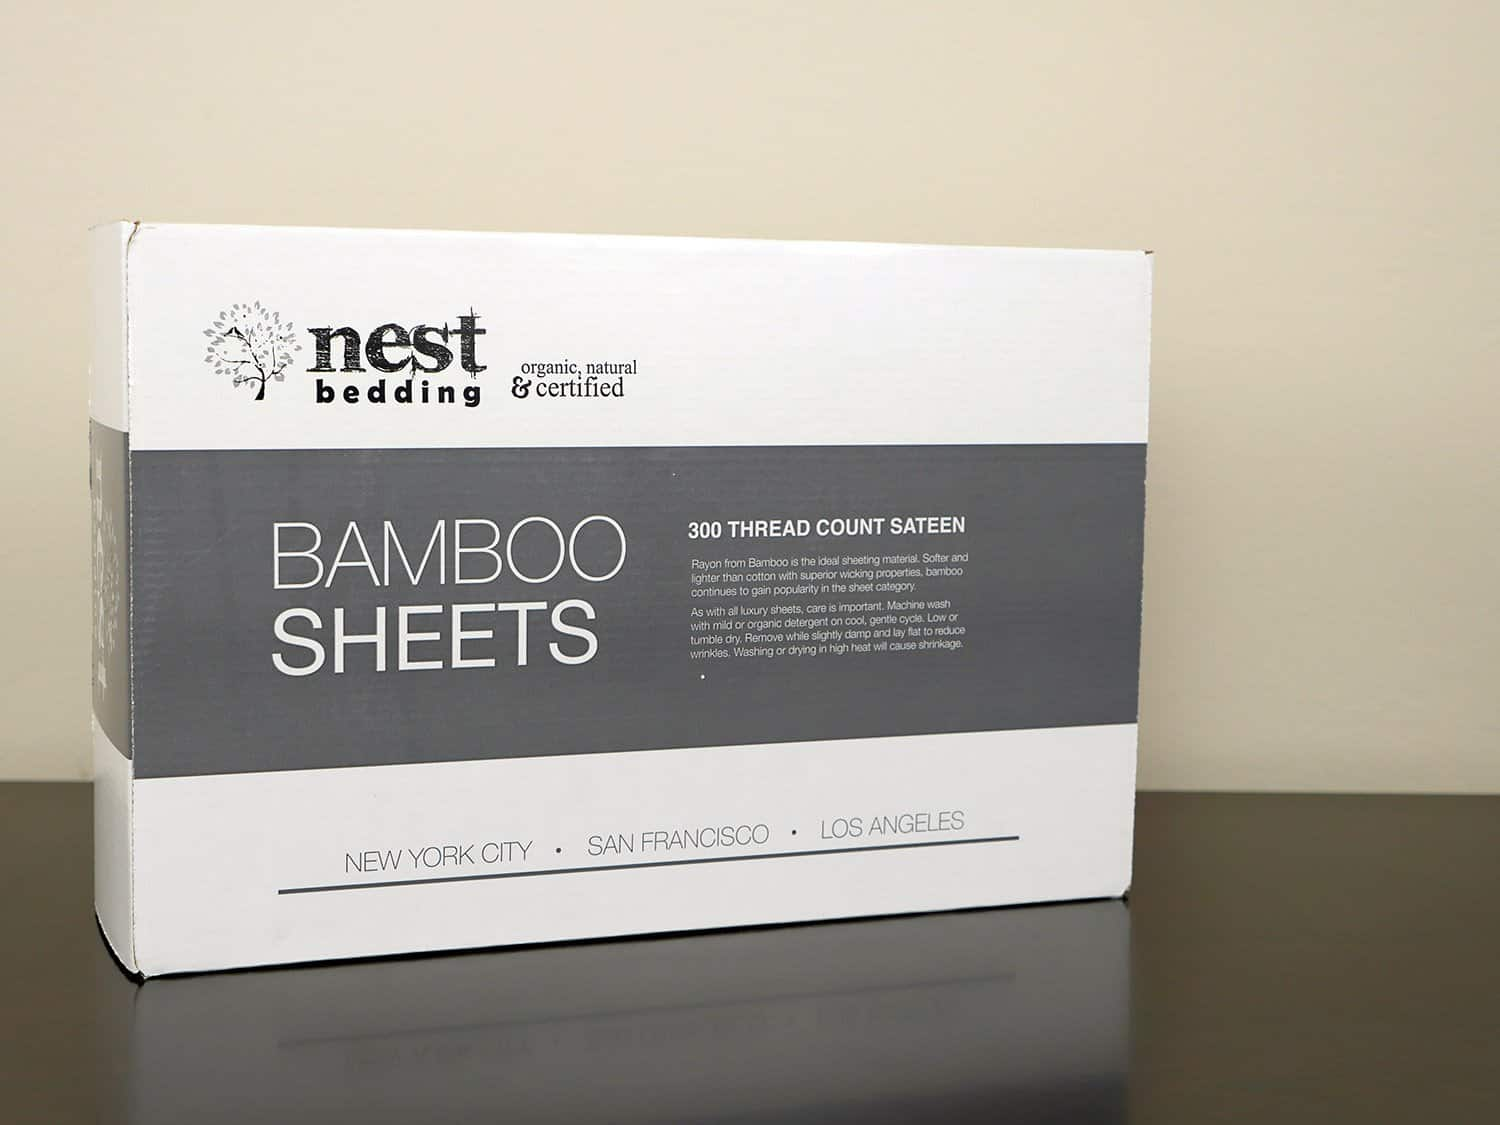 nest-bedding-bamboo-sheets Bed Sheets Ultimate Guide — What Are the Best Types, Materials, and Weaves?